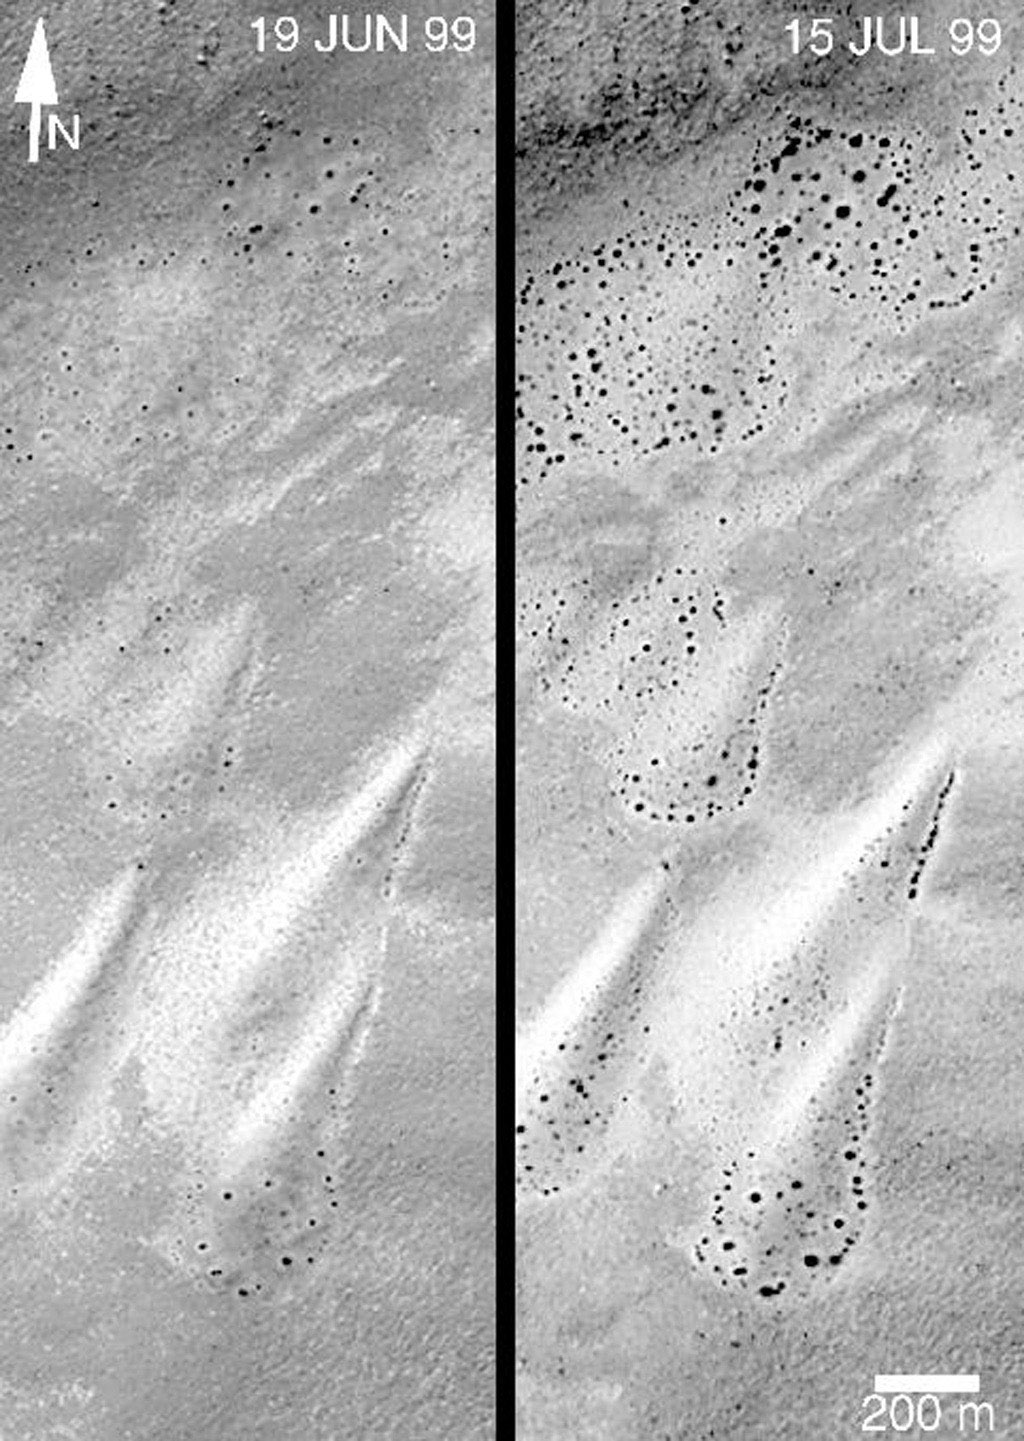 NASA's Mars Global Surveyor shows changes on a set of nearly pear-shaped sand dunes located on the floor of an unnamed crateon Mars featuring dunes as they appeared on June 19, 1999 and July 15, 1999.